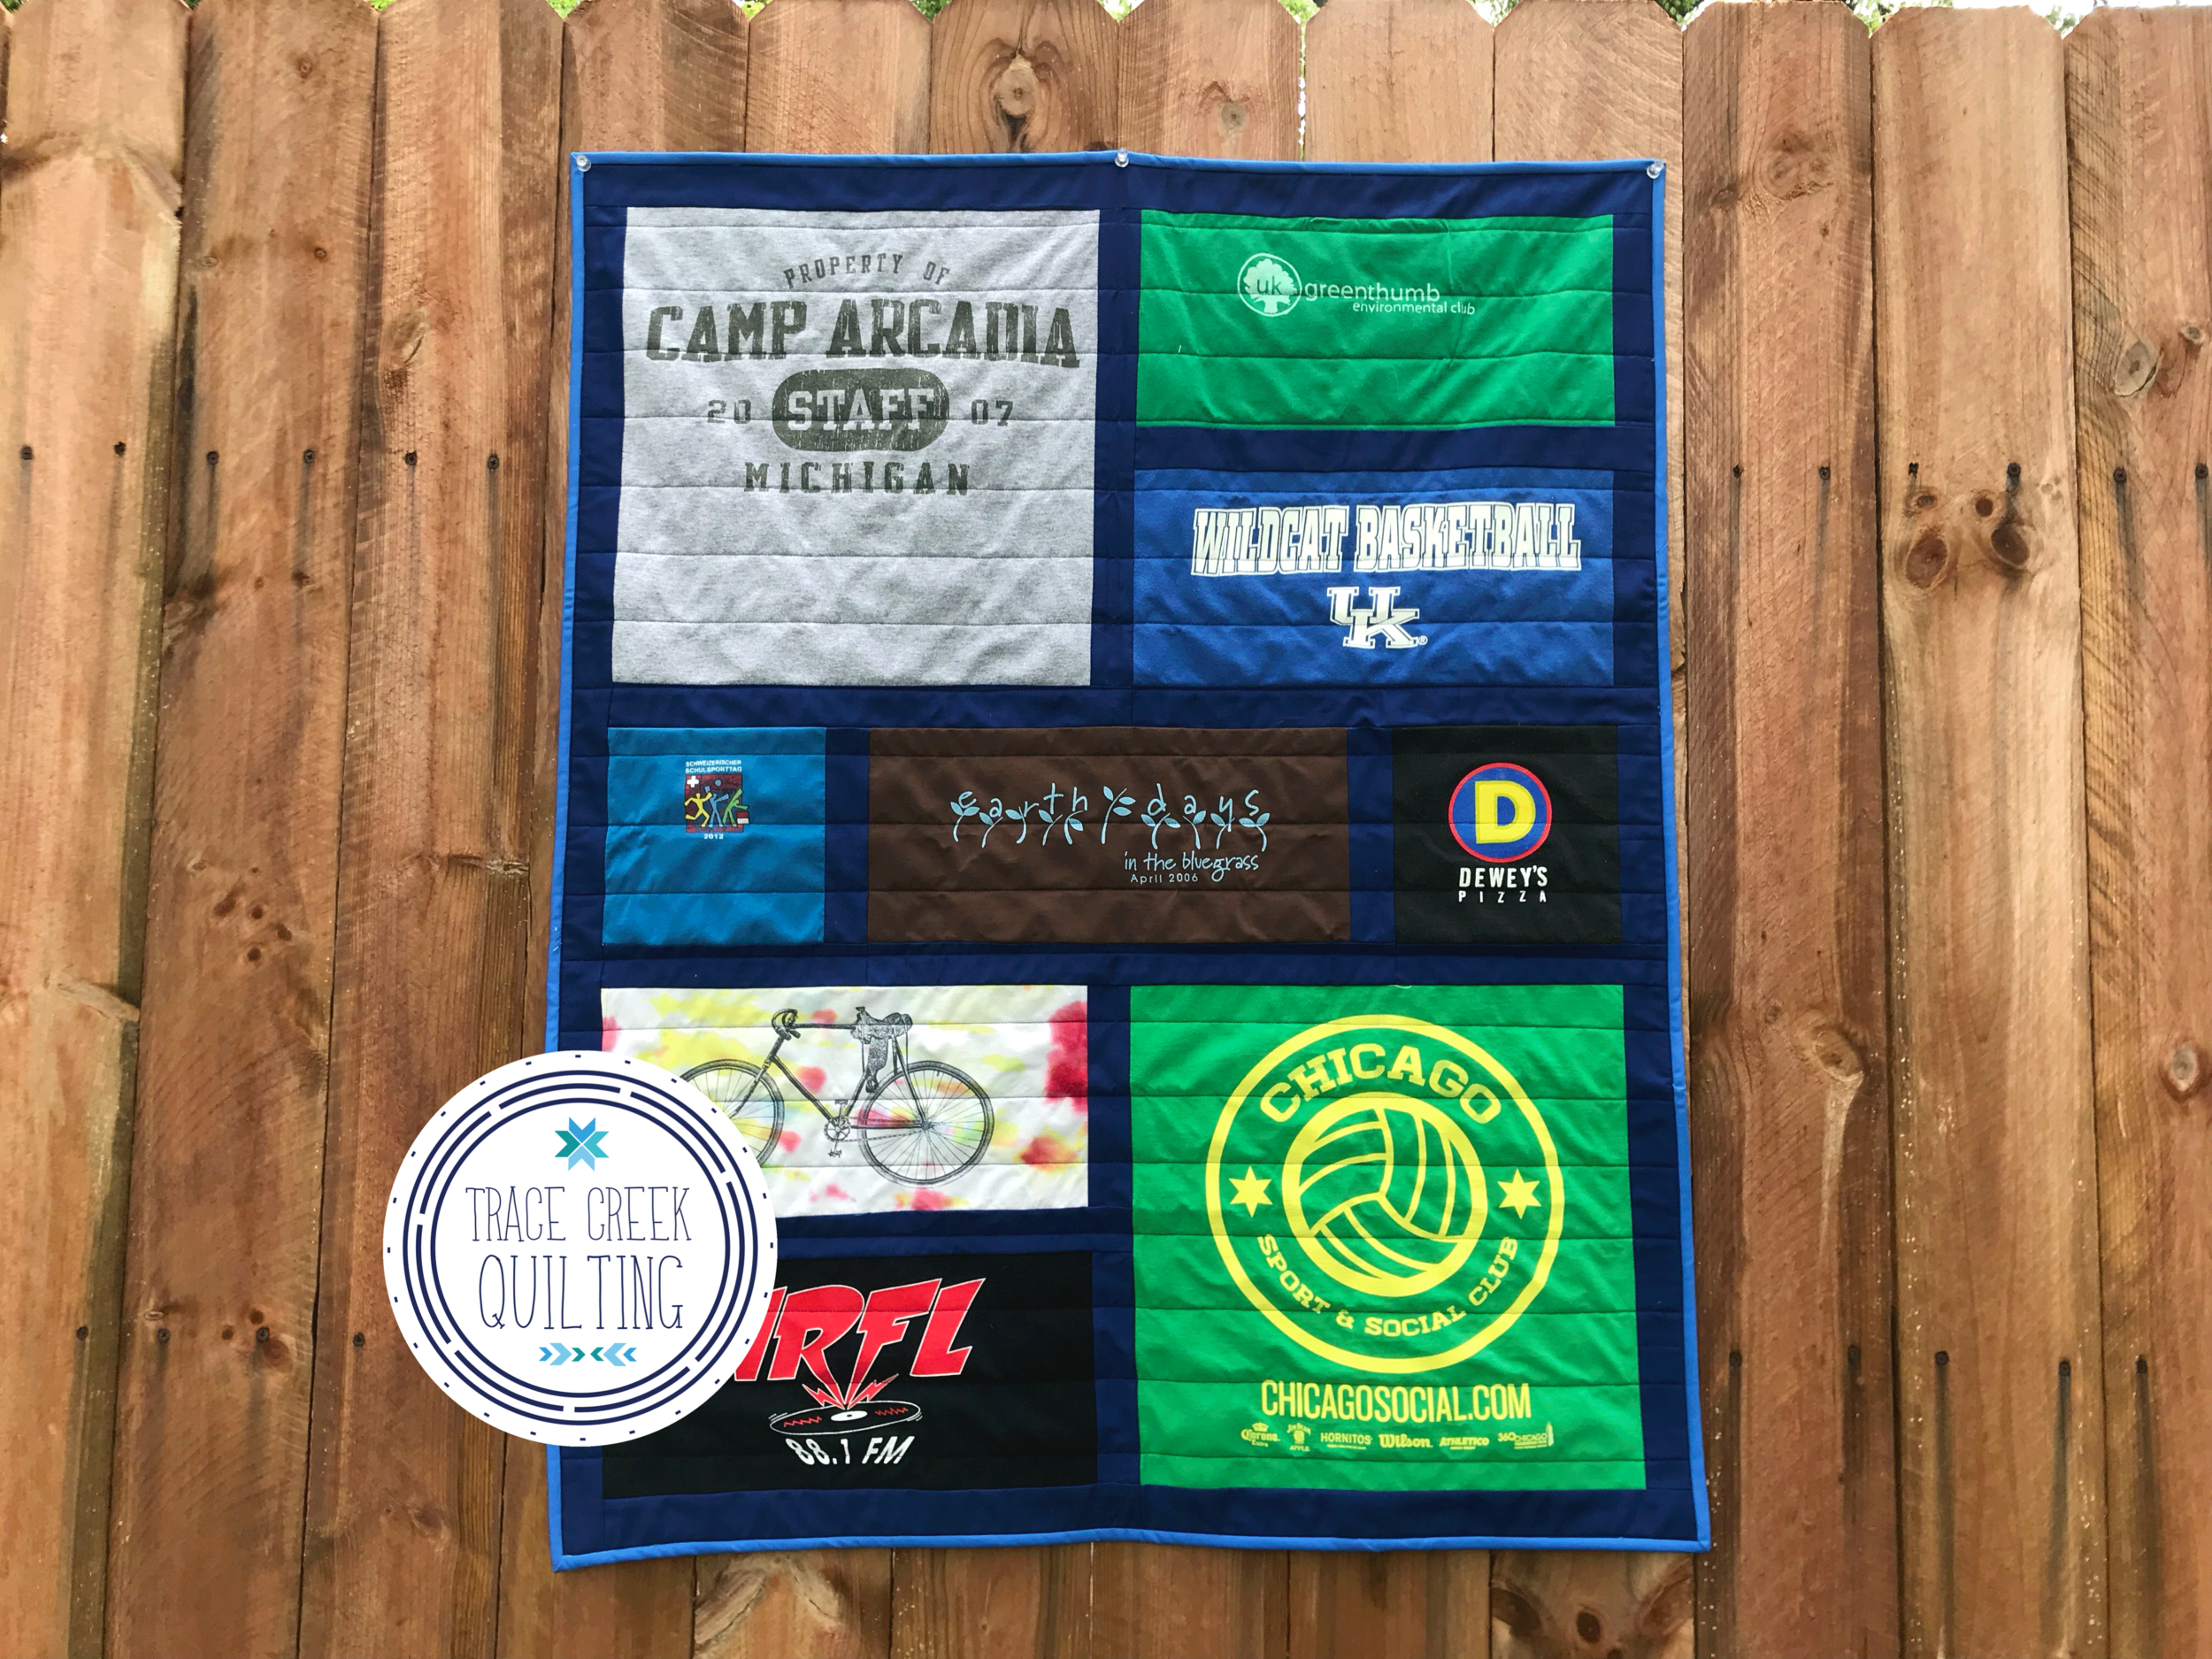 TShirt-Quilt-Trace-Creek-Quilting-2.png